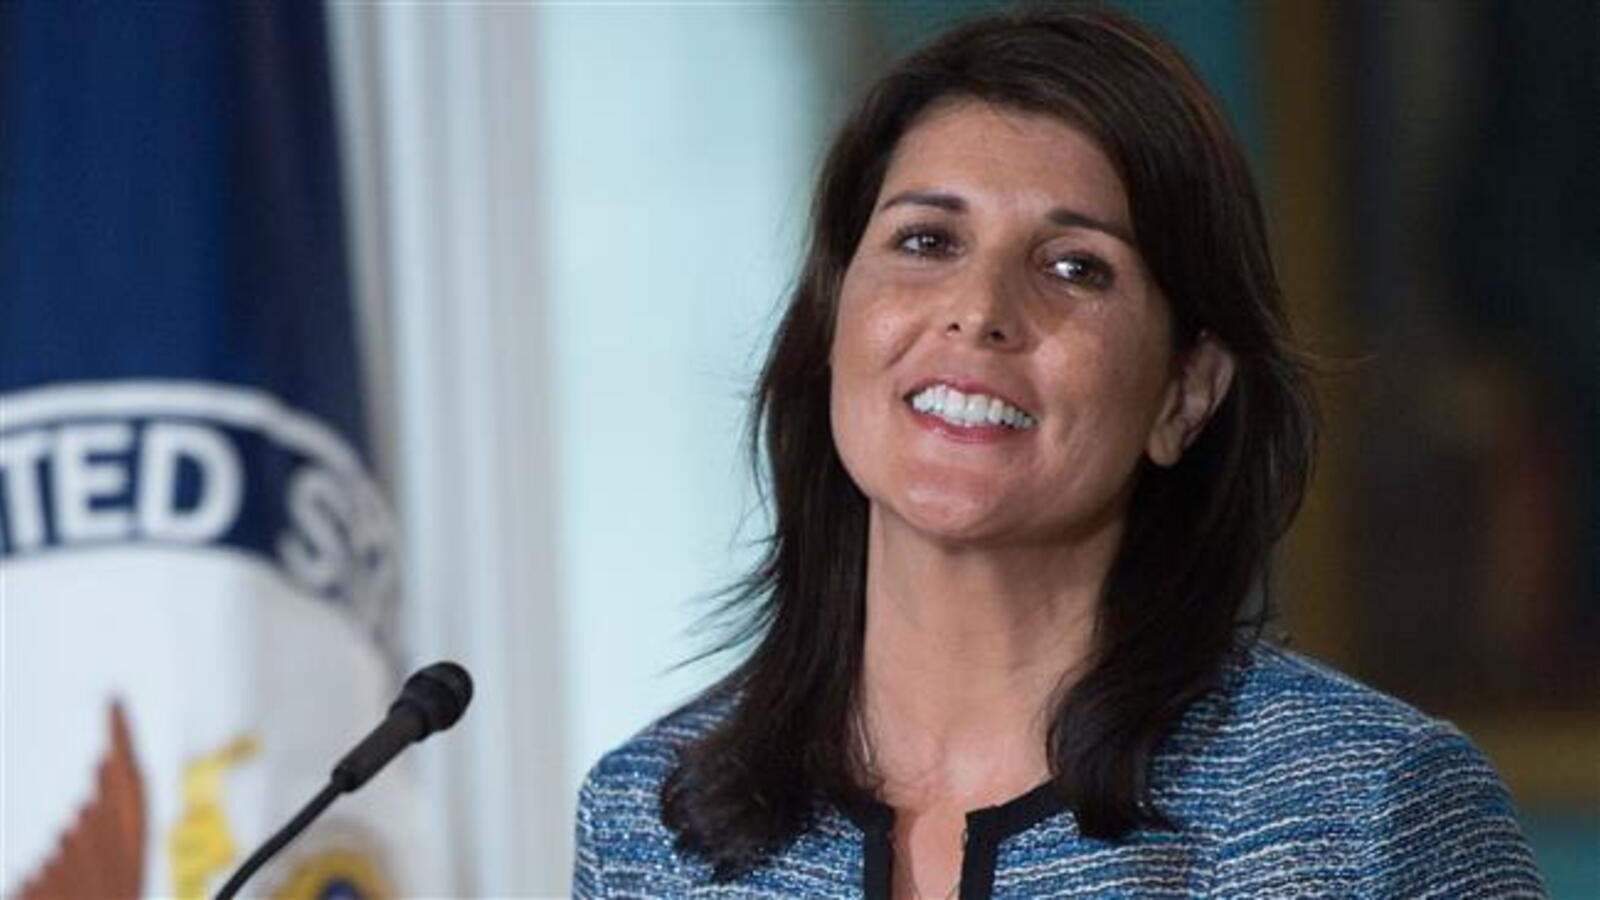 U.S. Ambassador to the United Nation Nikki Haley at the US Department of State in Washington DC on June 19, 2018. (Photo/ AFP)